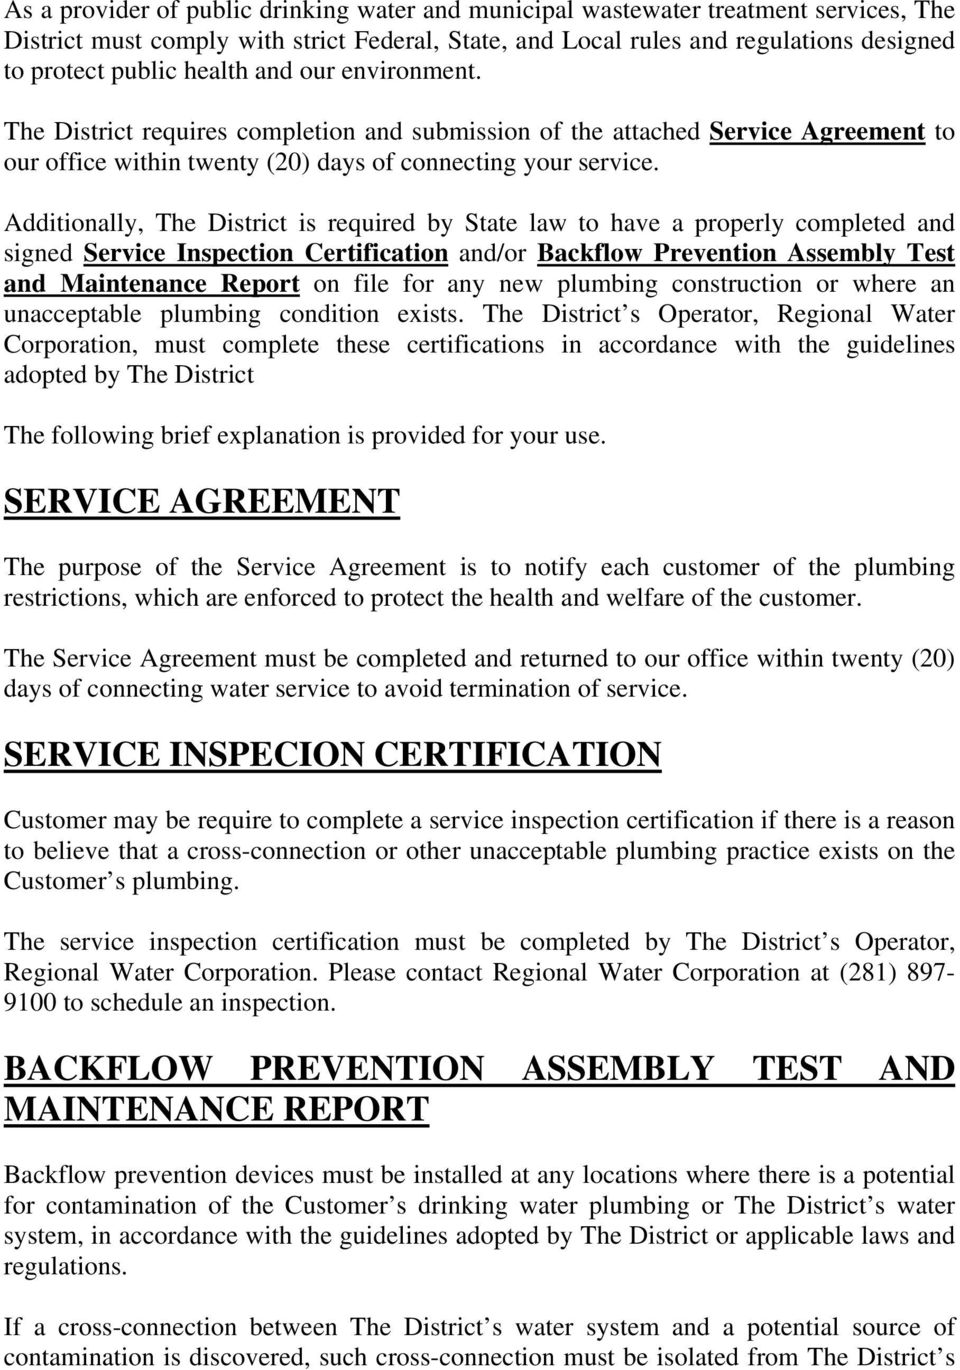 Additionally, The District is required by State law to have a properly completed and signed Service Inspection Certification and/or Backflow Prevention Assembly Test and Maintenance Report on file